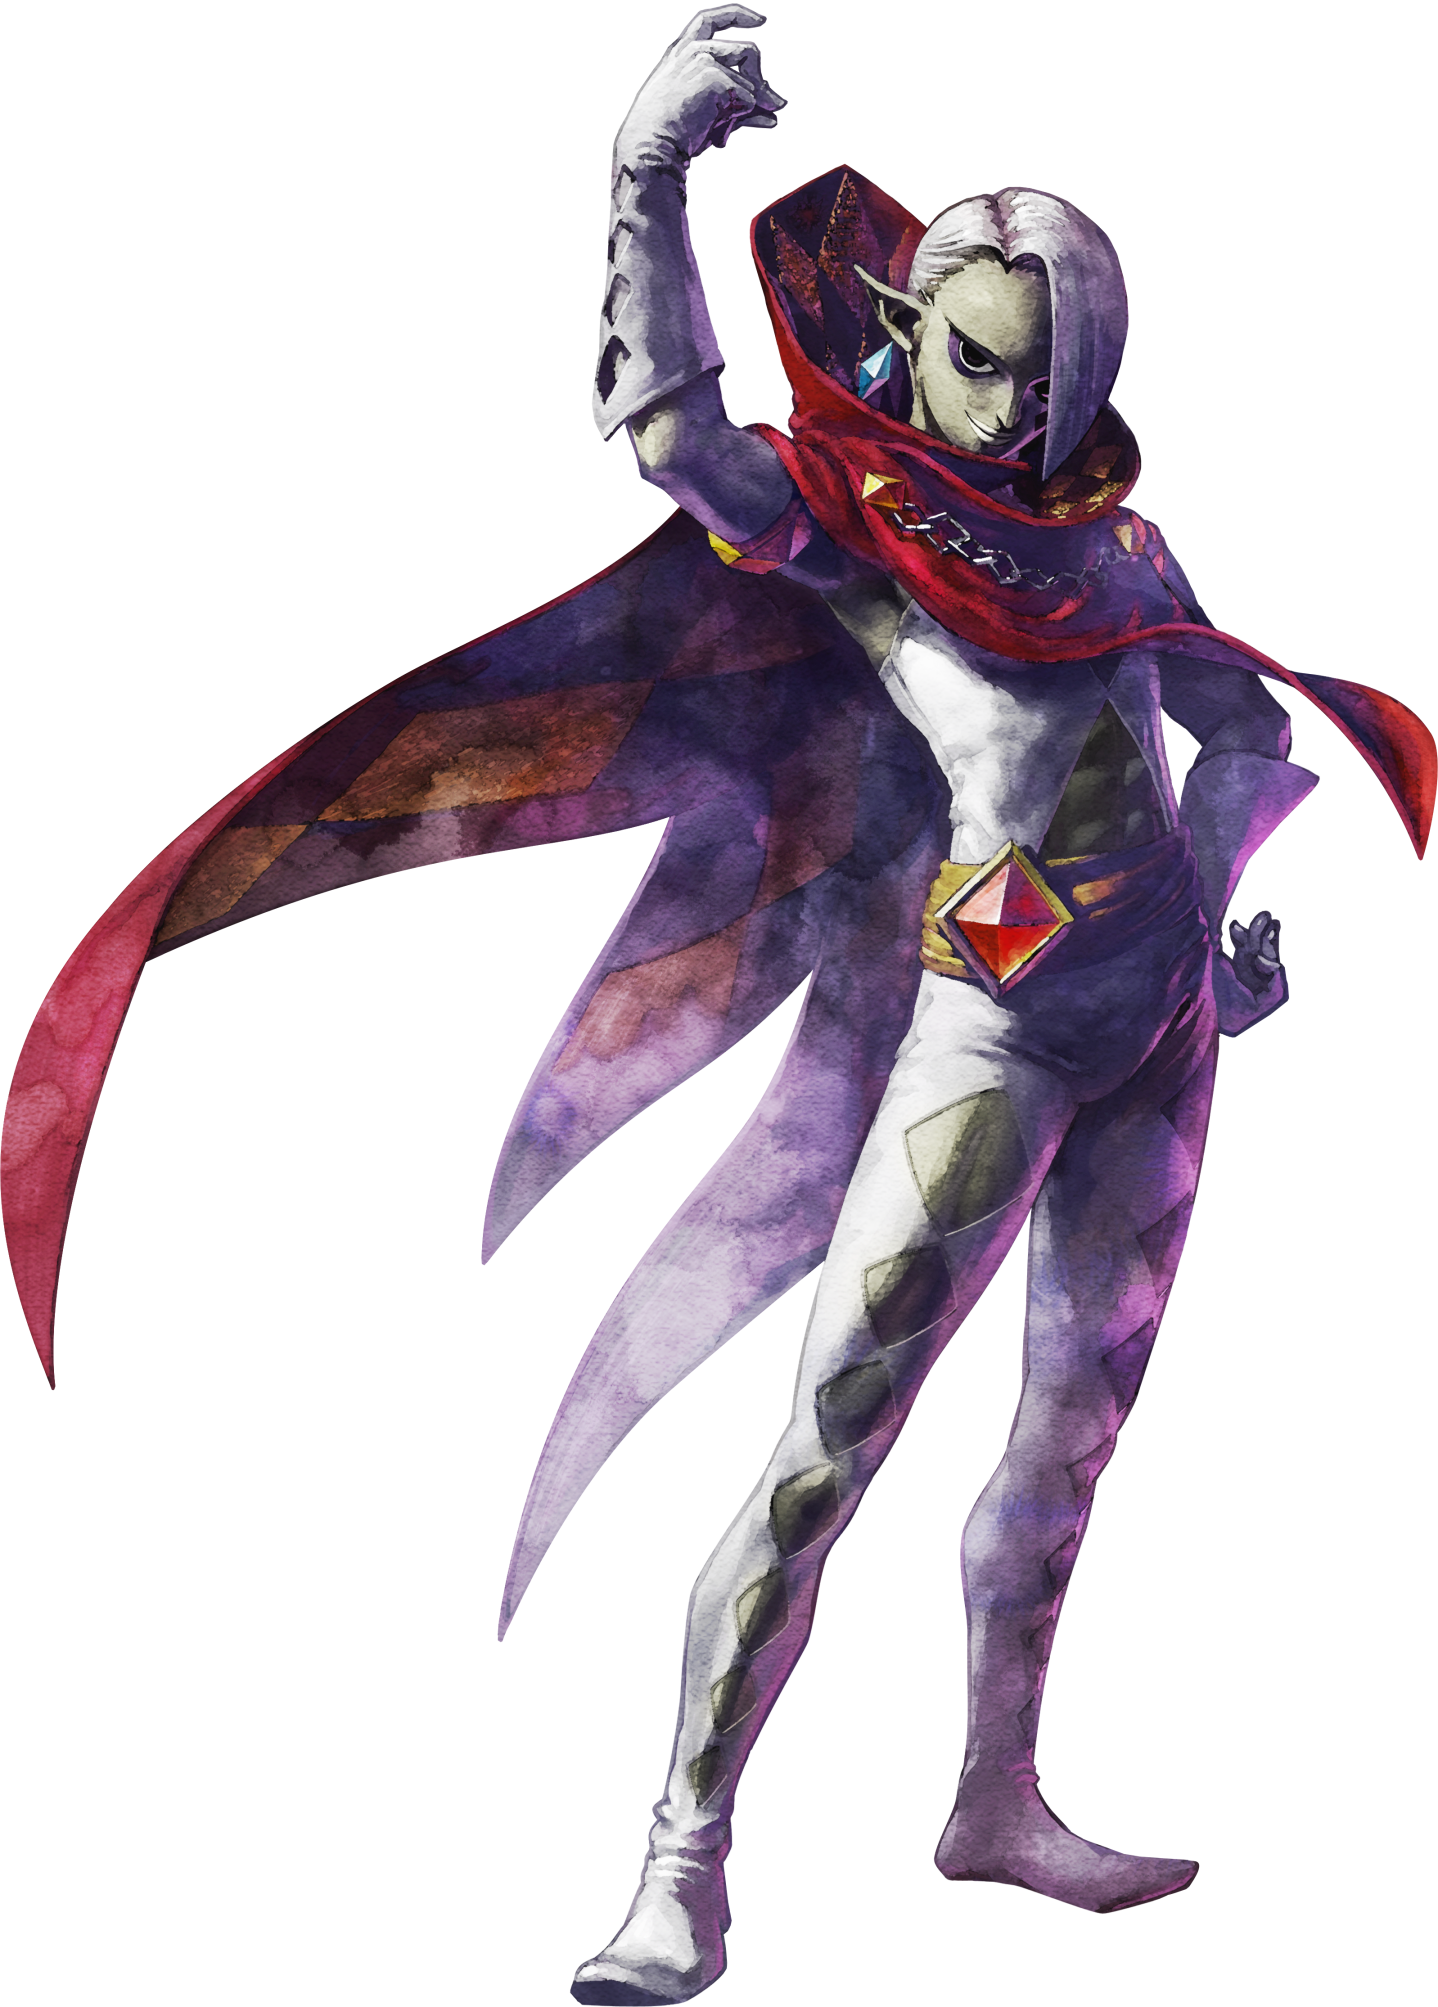 http://img3.wikia.nocookie.net/__cb20140821184048/ssb/images/d/d7/Ghirahim_Artwork.png